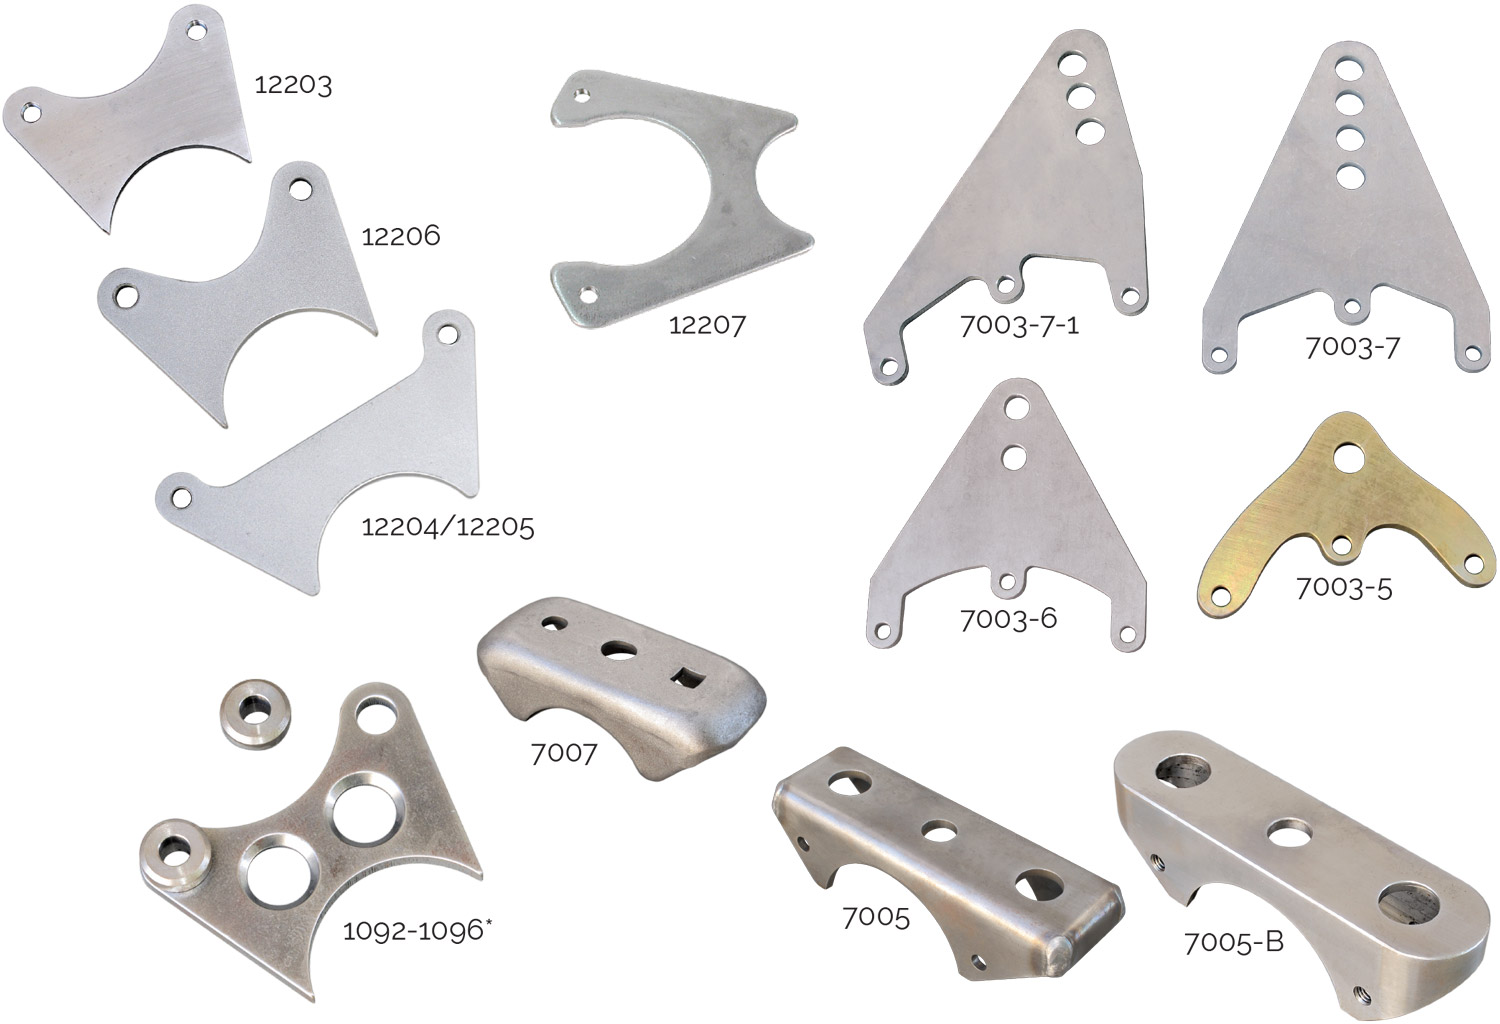 Brake Caliper Brackets, Mounting Brackets and Rear End Mounts